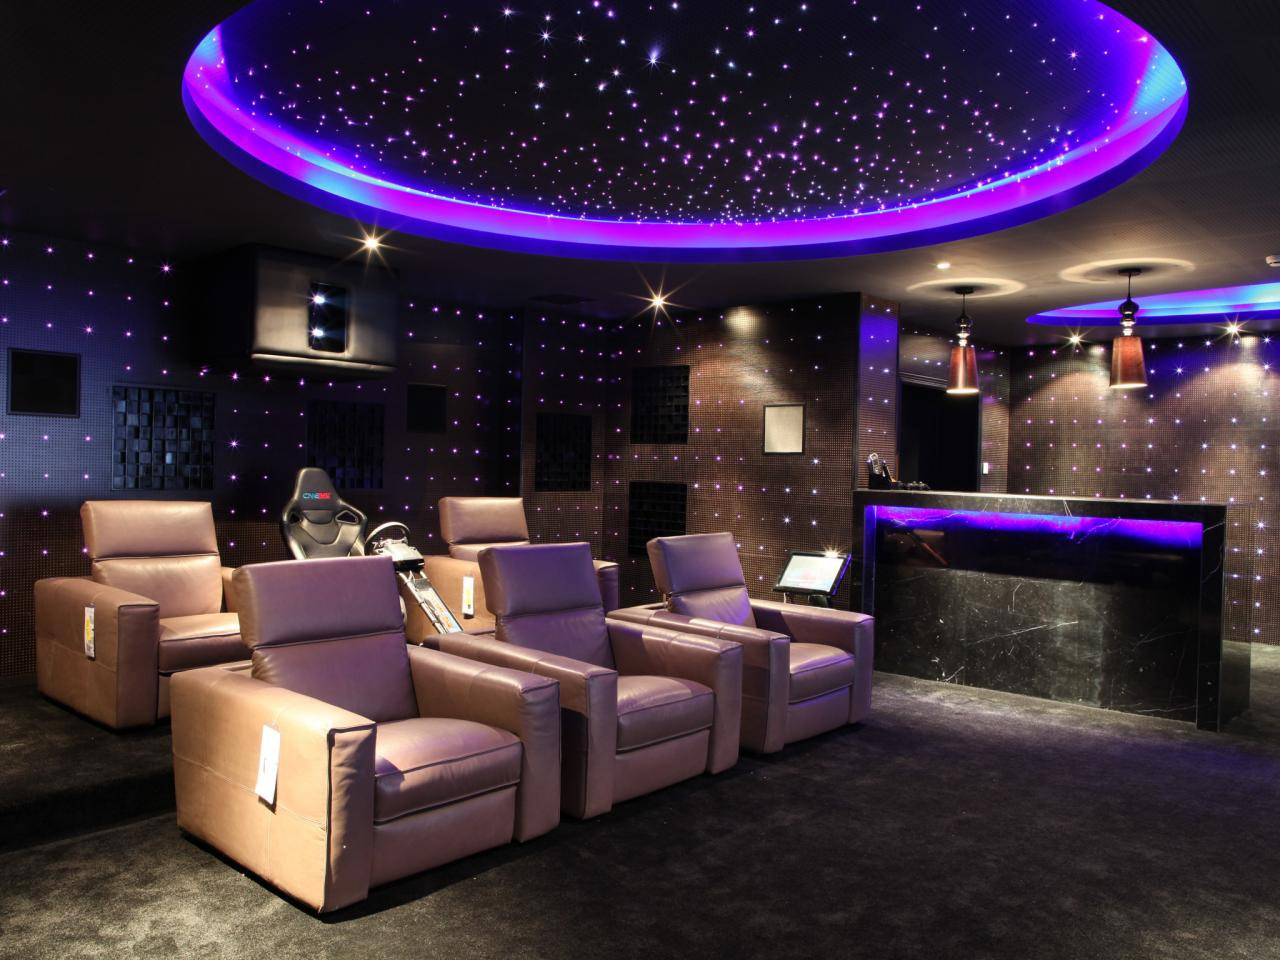 home theater design ideas - Home Theater Design Group